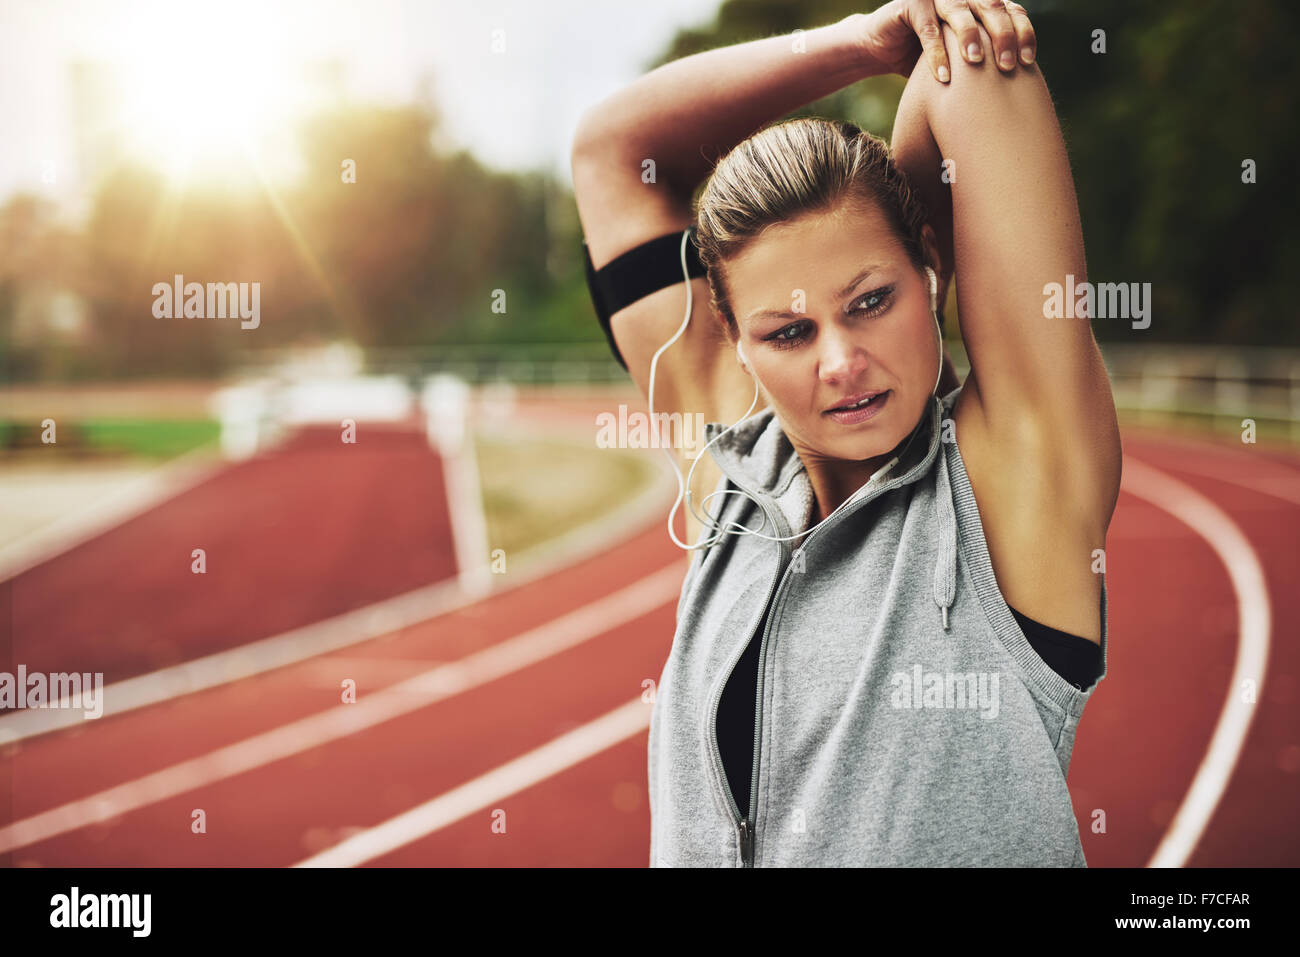 Fit young woman stretching her arms before training. Concentrated - Stock Image